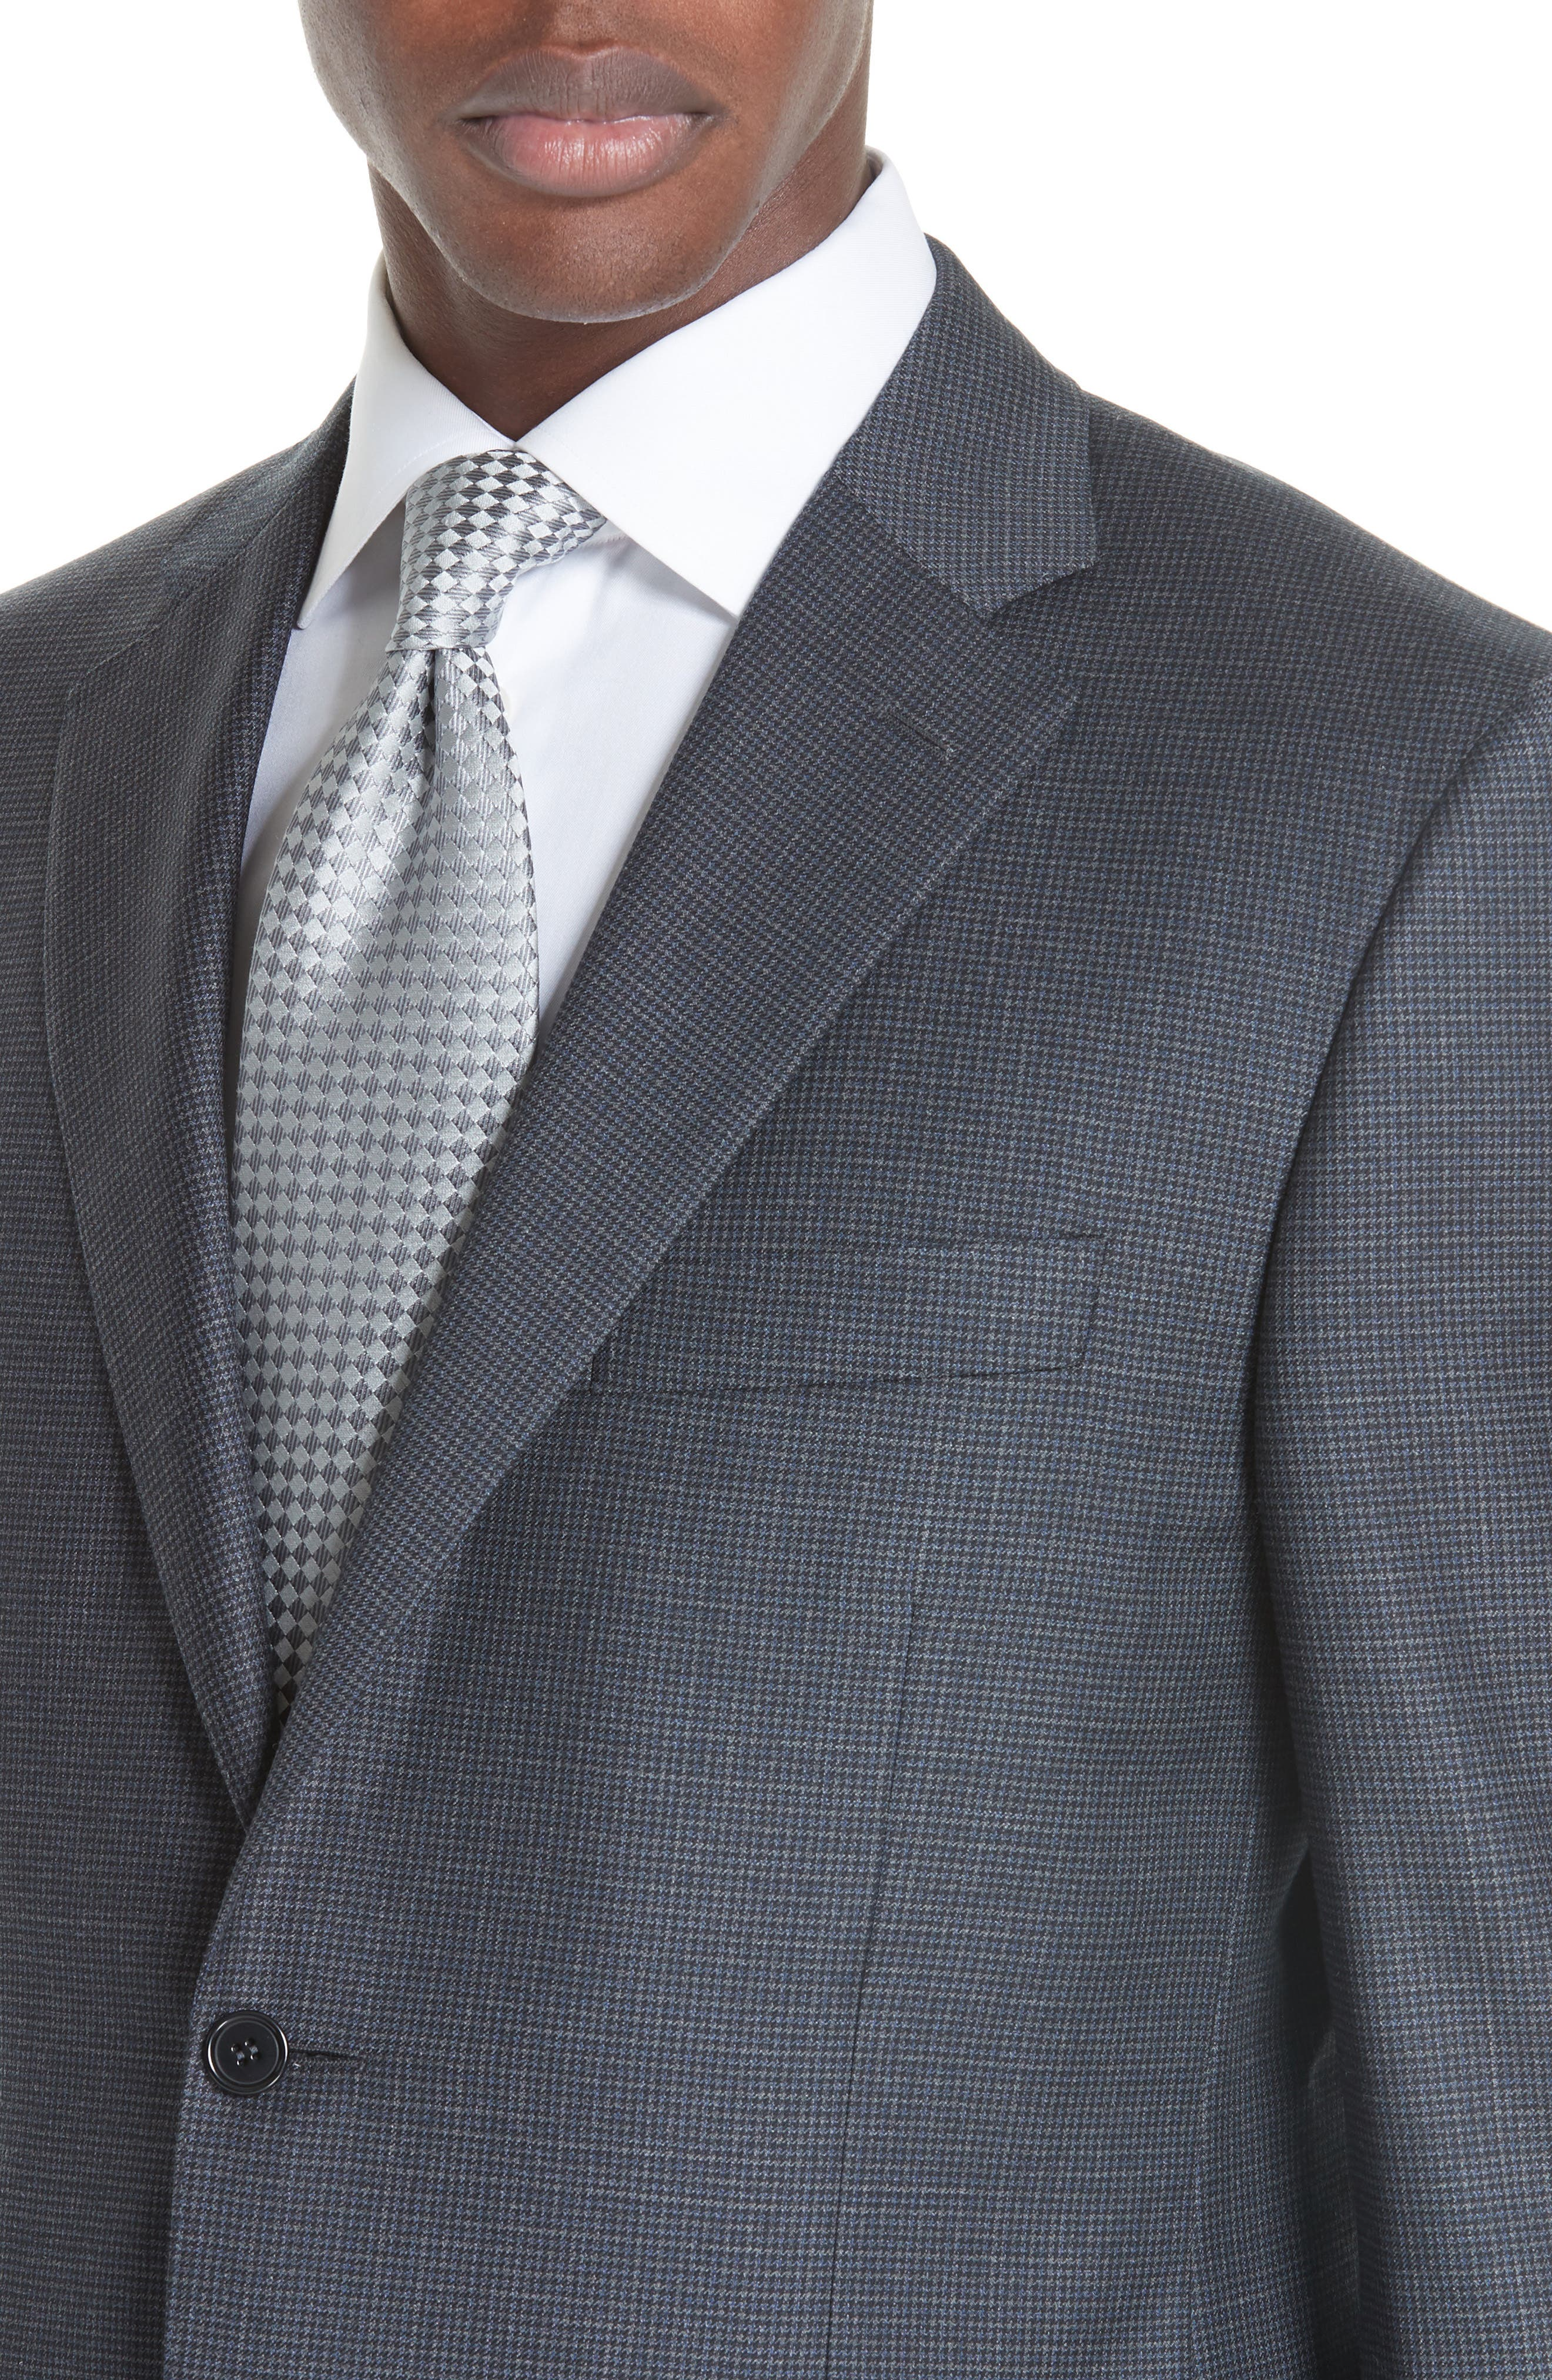 Classic Fit Houndstooth Wool Suit,                             Alternate thumbnail 4, color,                             DARK GREY